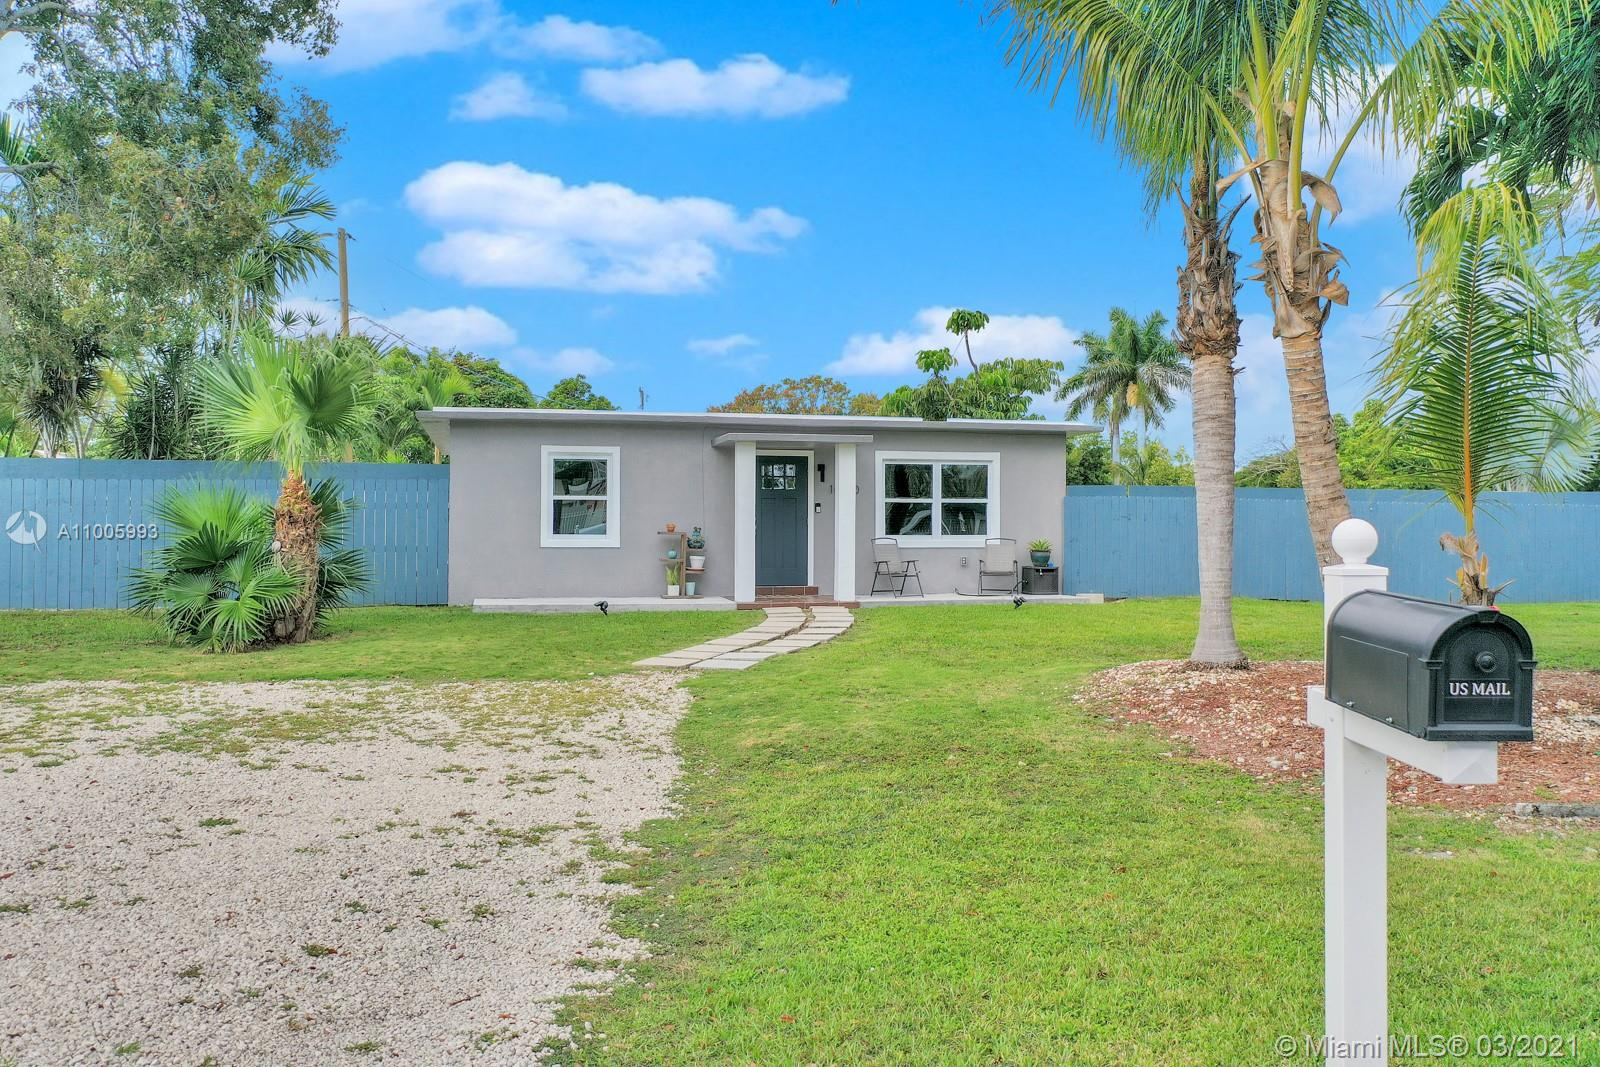 14920 Garfield Dr Property Photo - Homestead, FL real estate listing